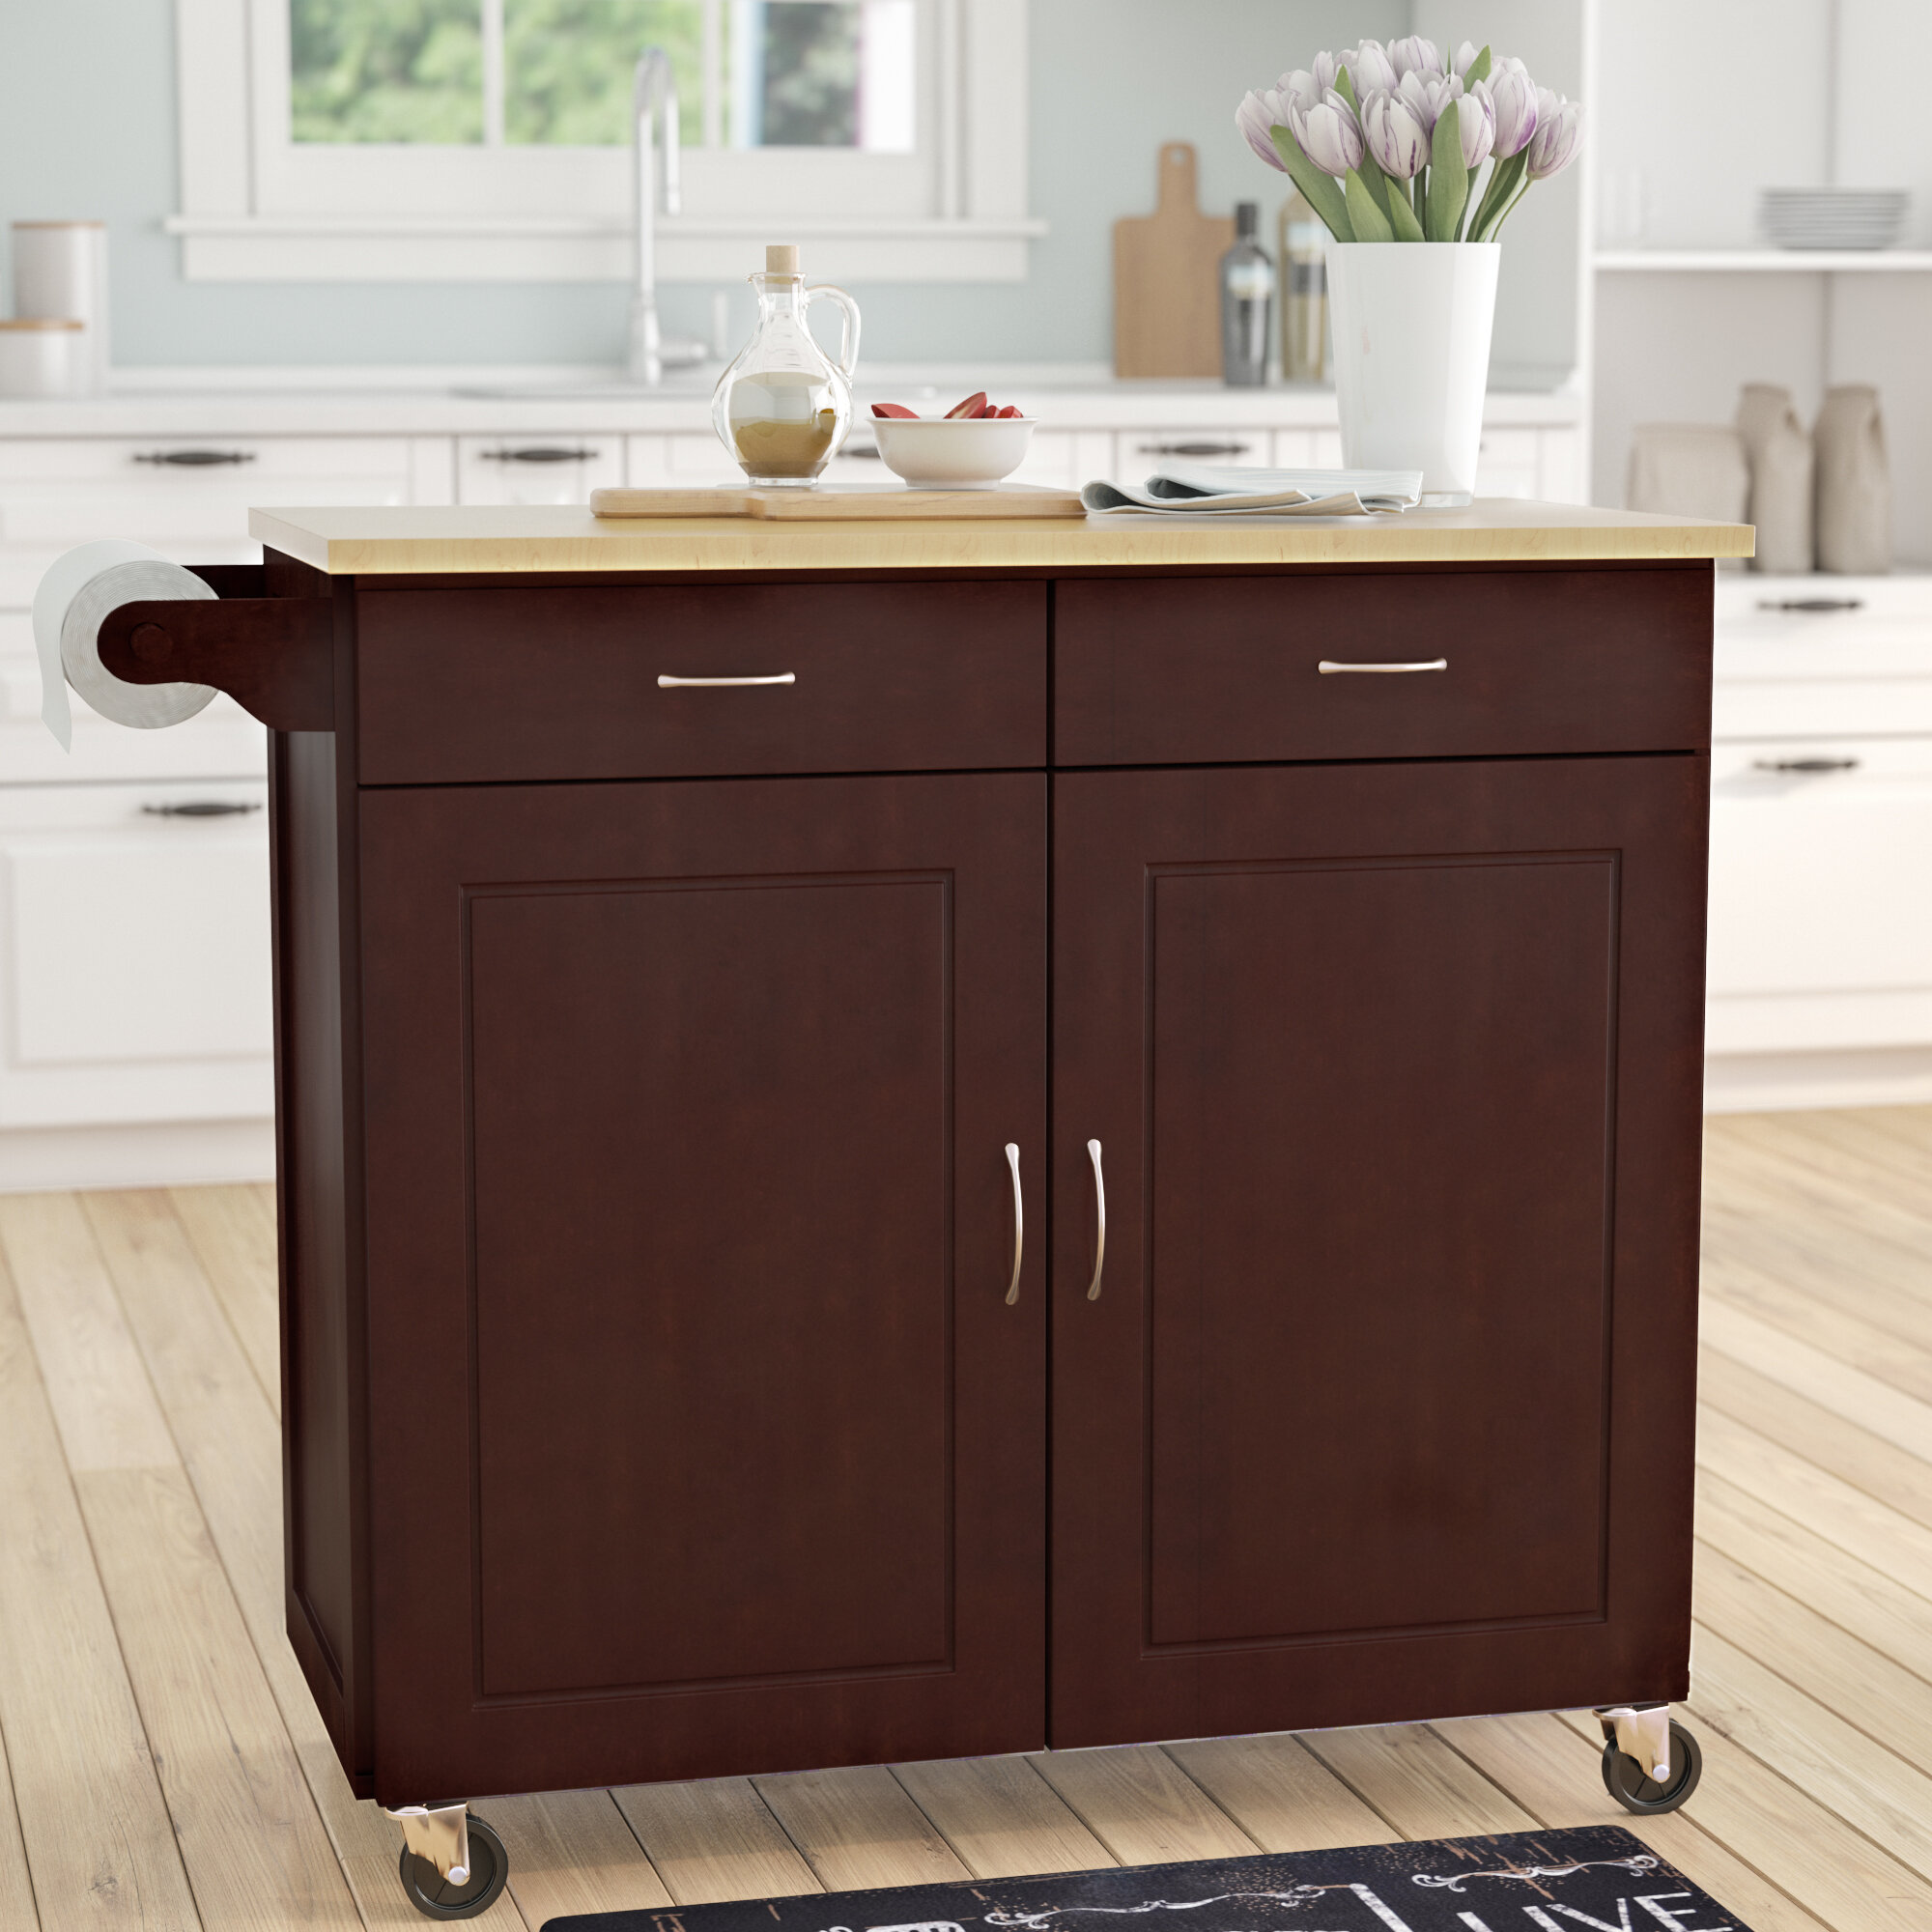 Alcott Hill Sammons Kitchen Island with Wood Top & Reviews | Wayfair